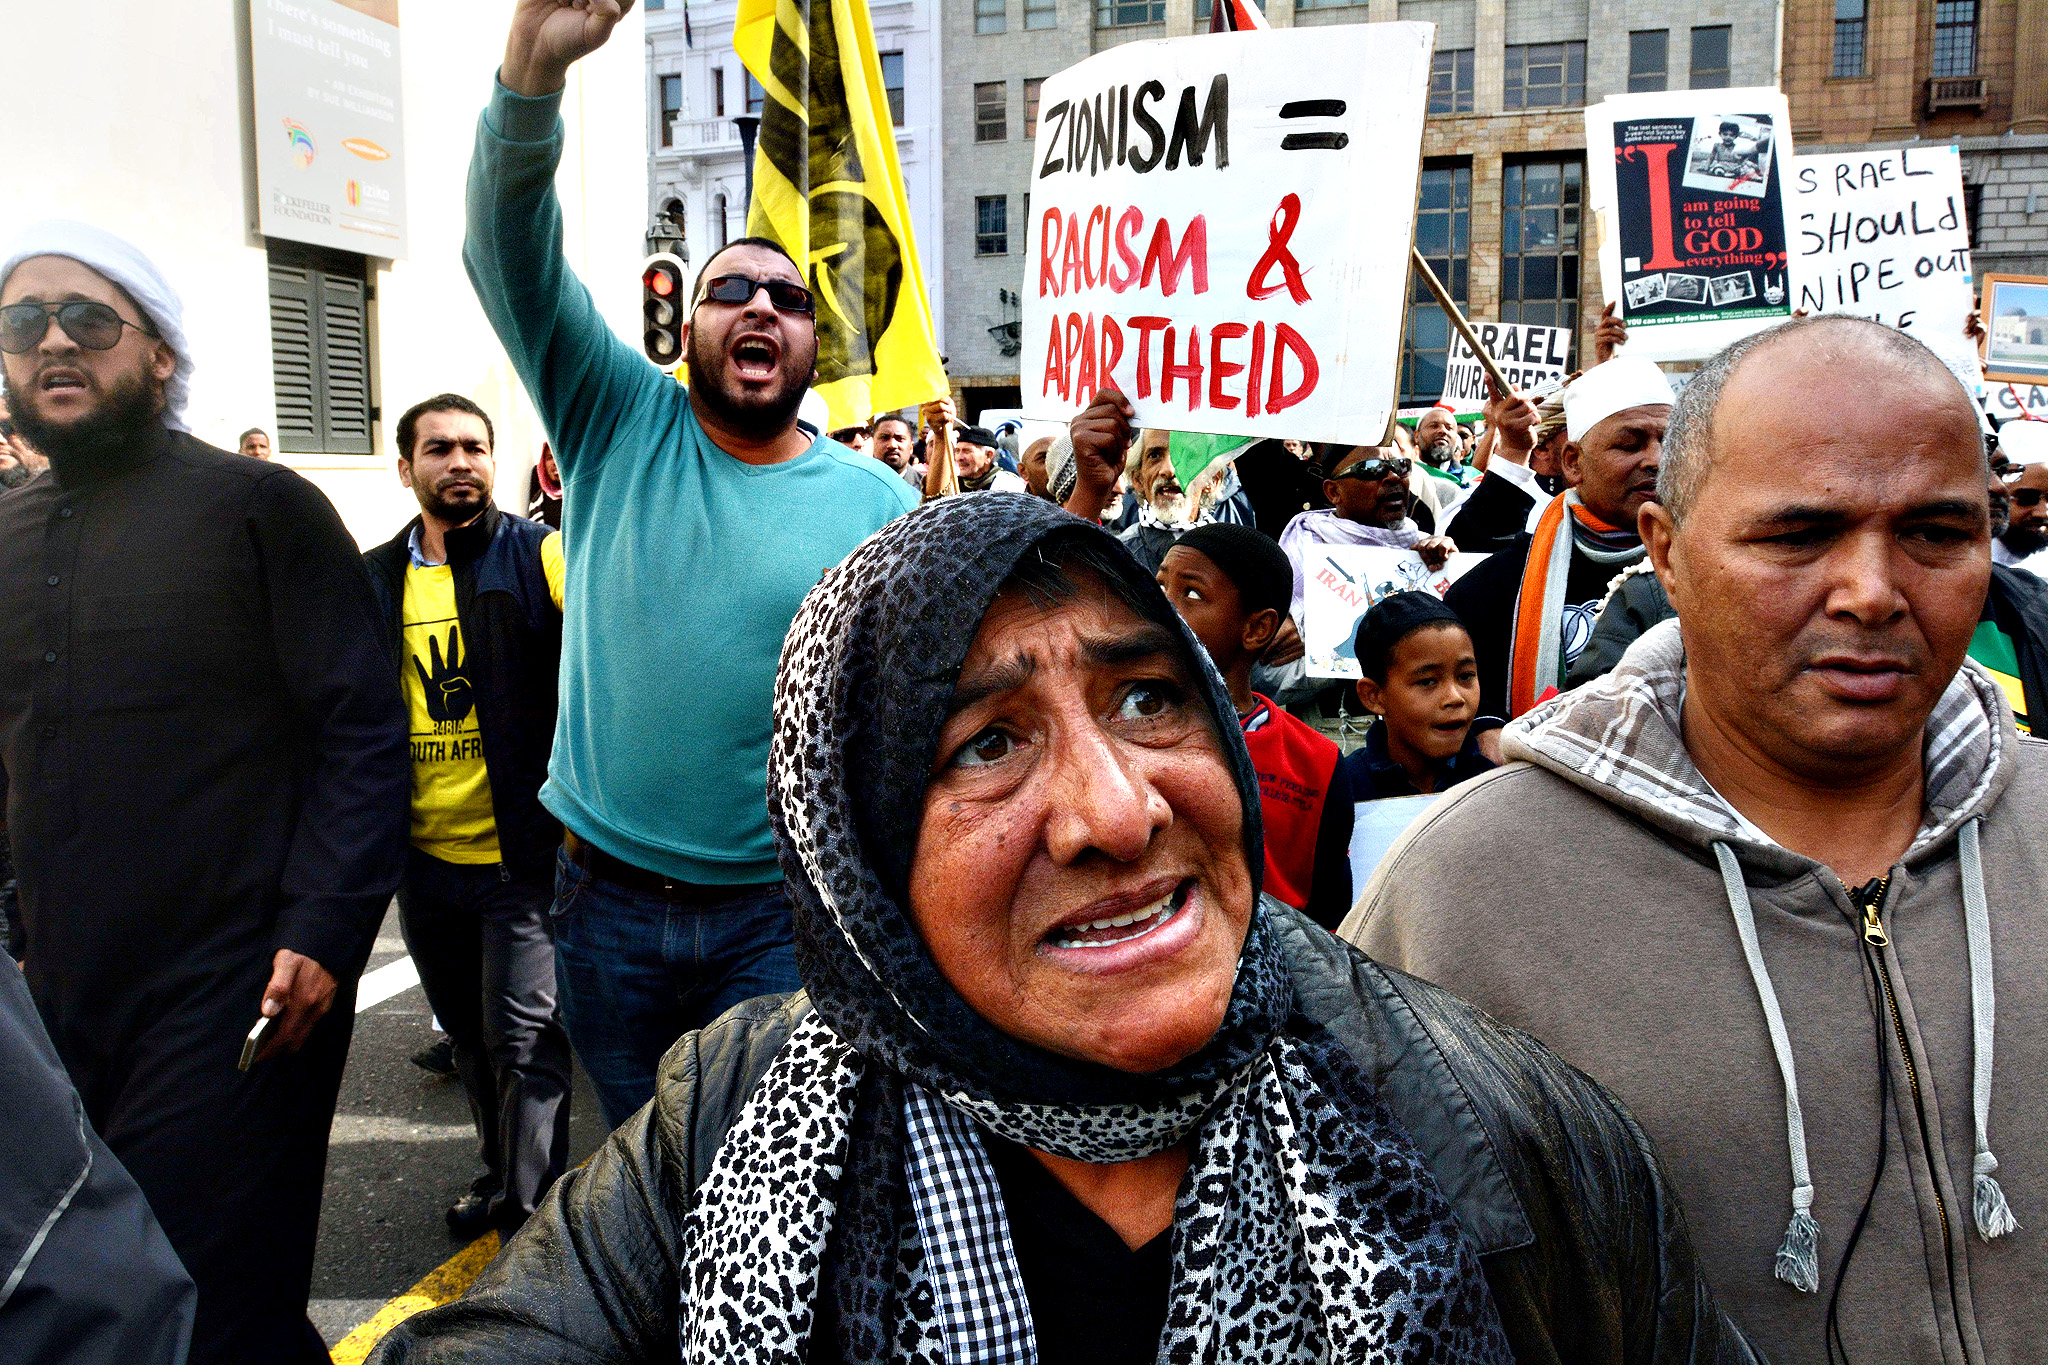 People hold placards and shout slogans while marching through Cape Town to protest Israel's military campaign in Gaza and show their support to the Palestinian people, on July 16, 2014. Israel urged 100,000 Gazans to flee their homes on July 16, but the warning was largely ignored despite an intensification of the military's nine-day campaign after Hamas snubbed a ceasefire effort.